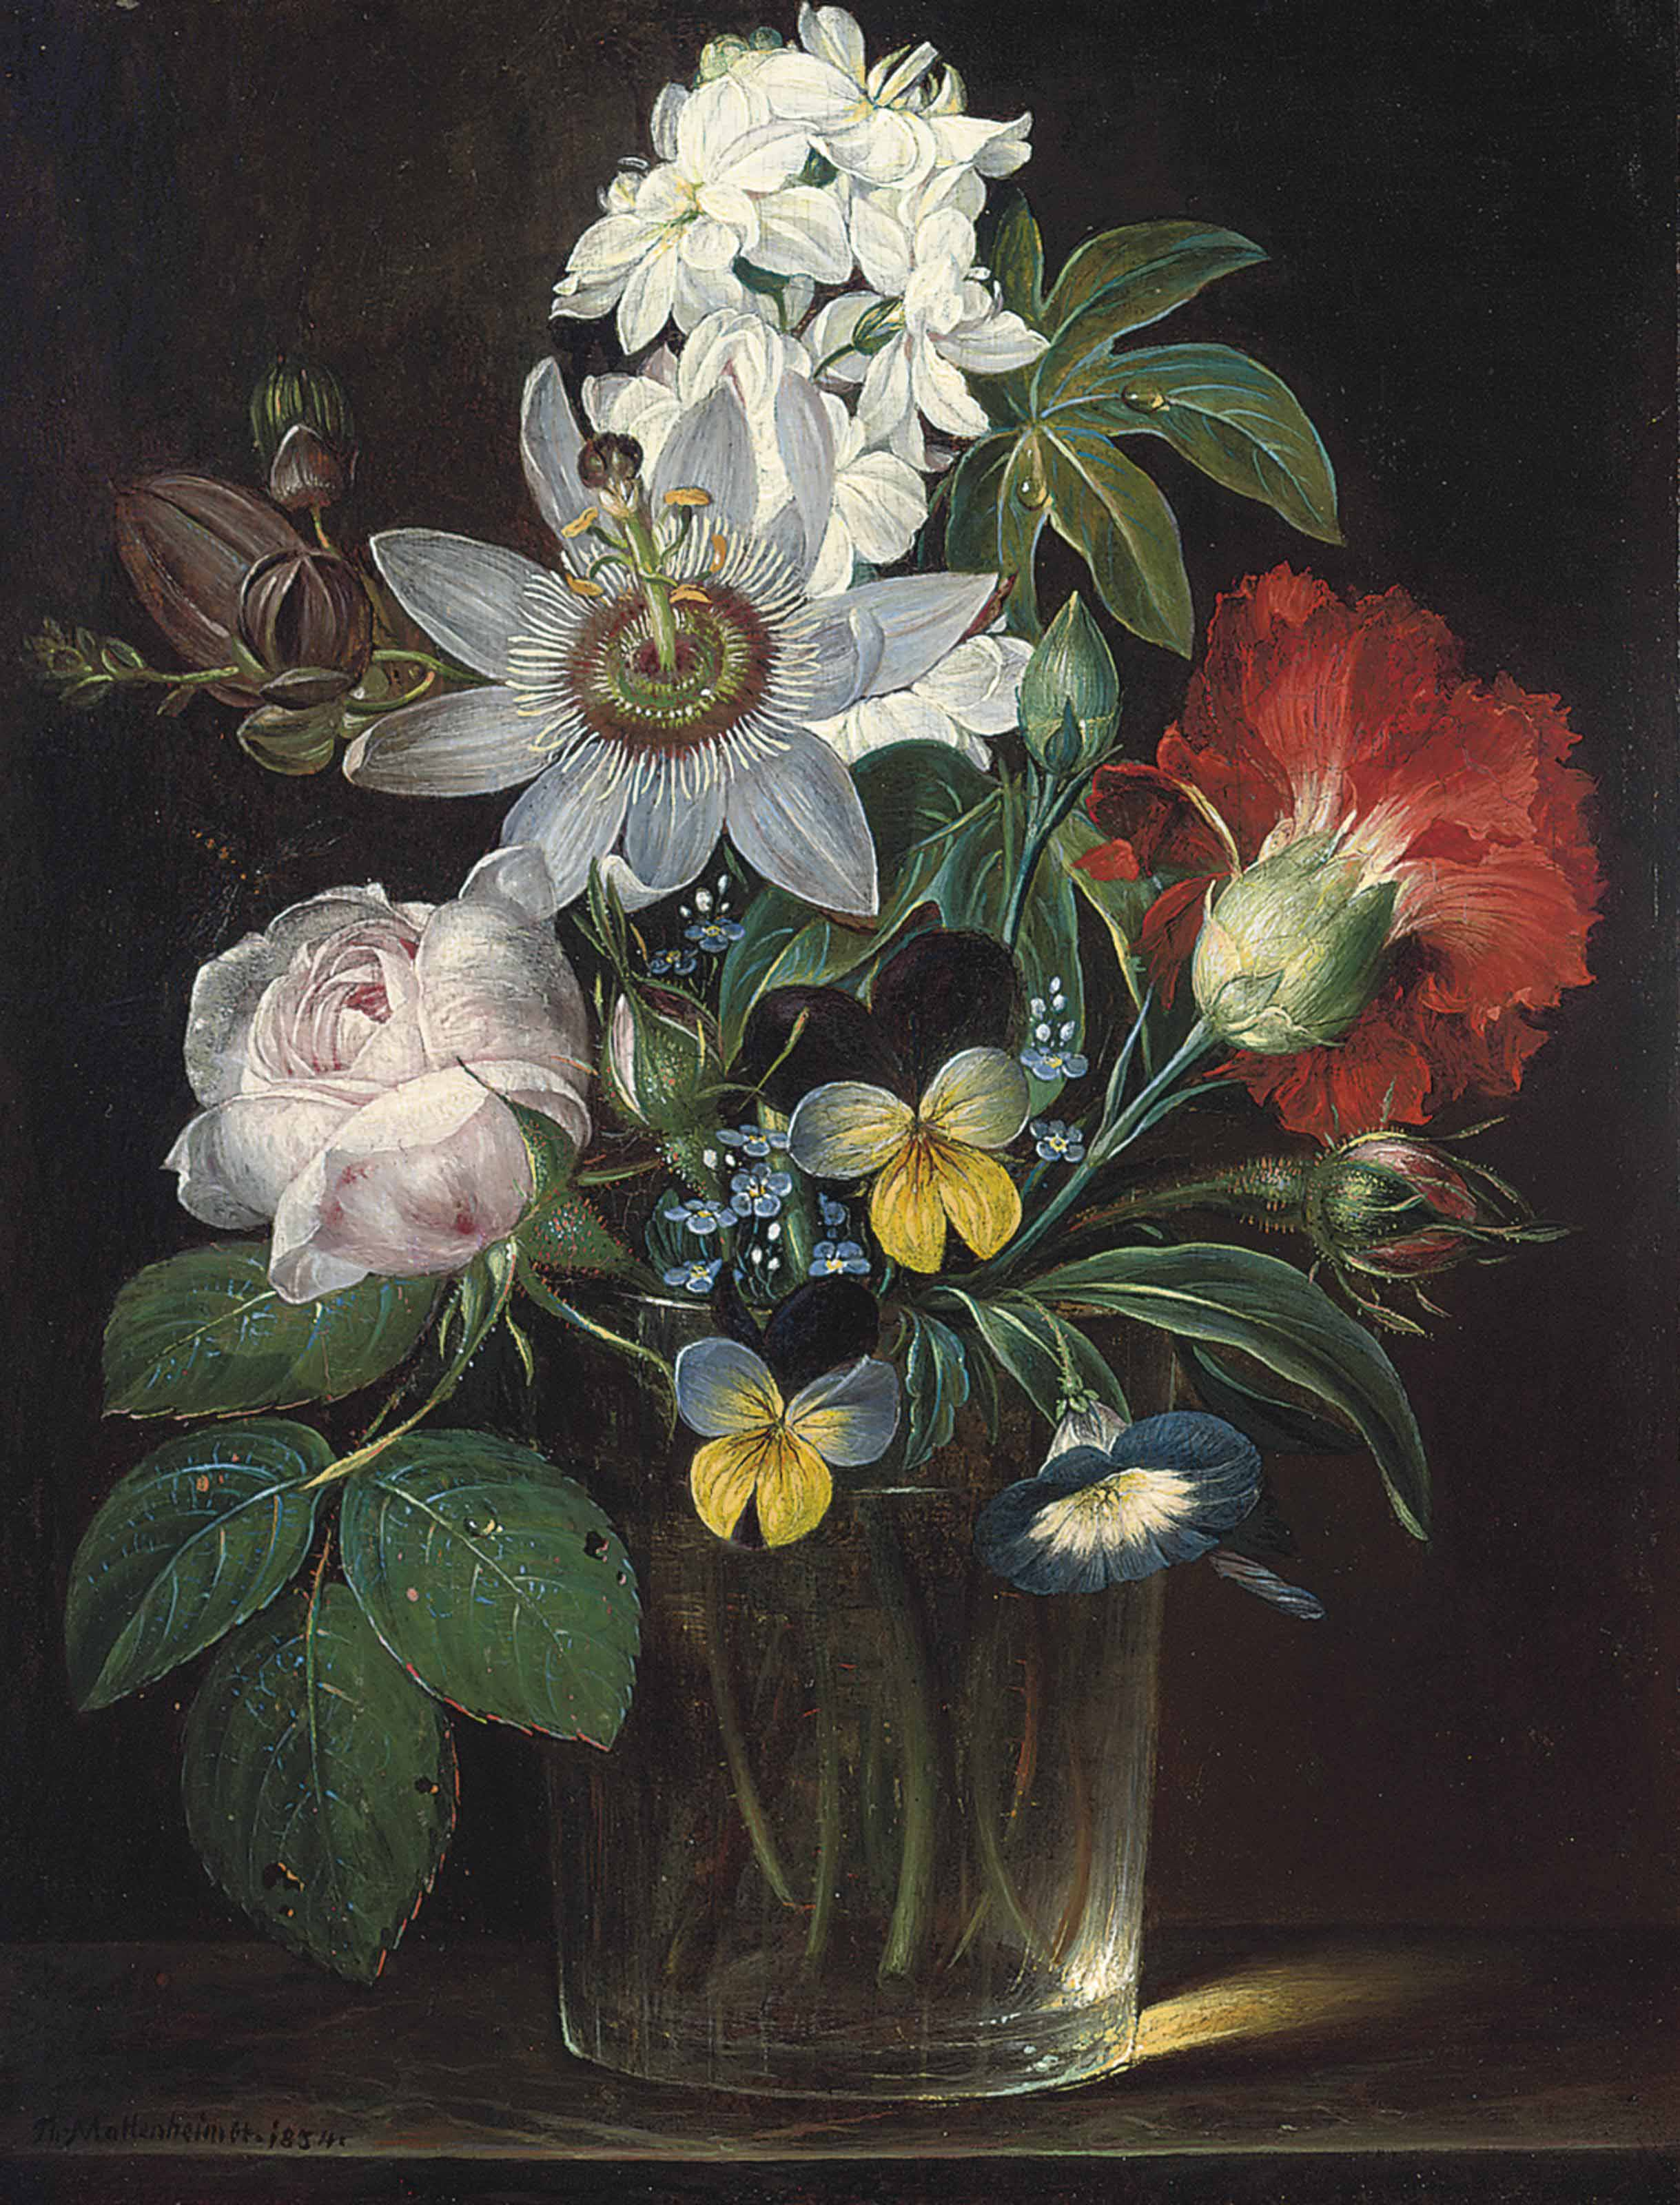 Roses, a carnation, forget-me-nots, violets, morning glory, a passion flower and a delphinium in a glass vase